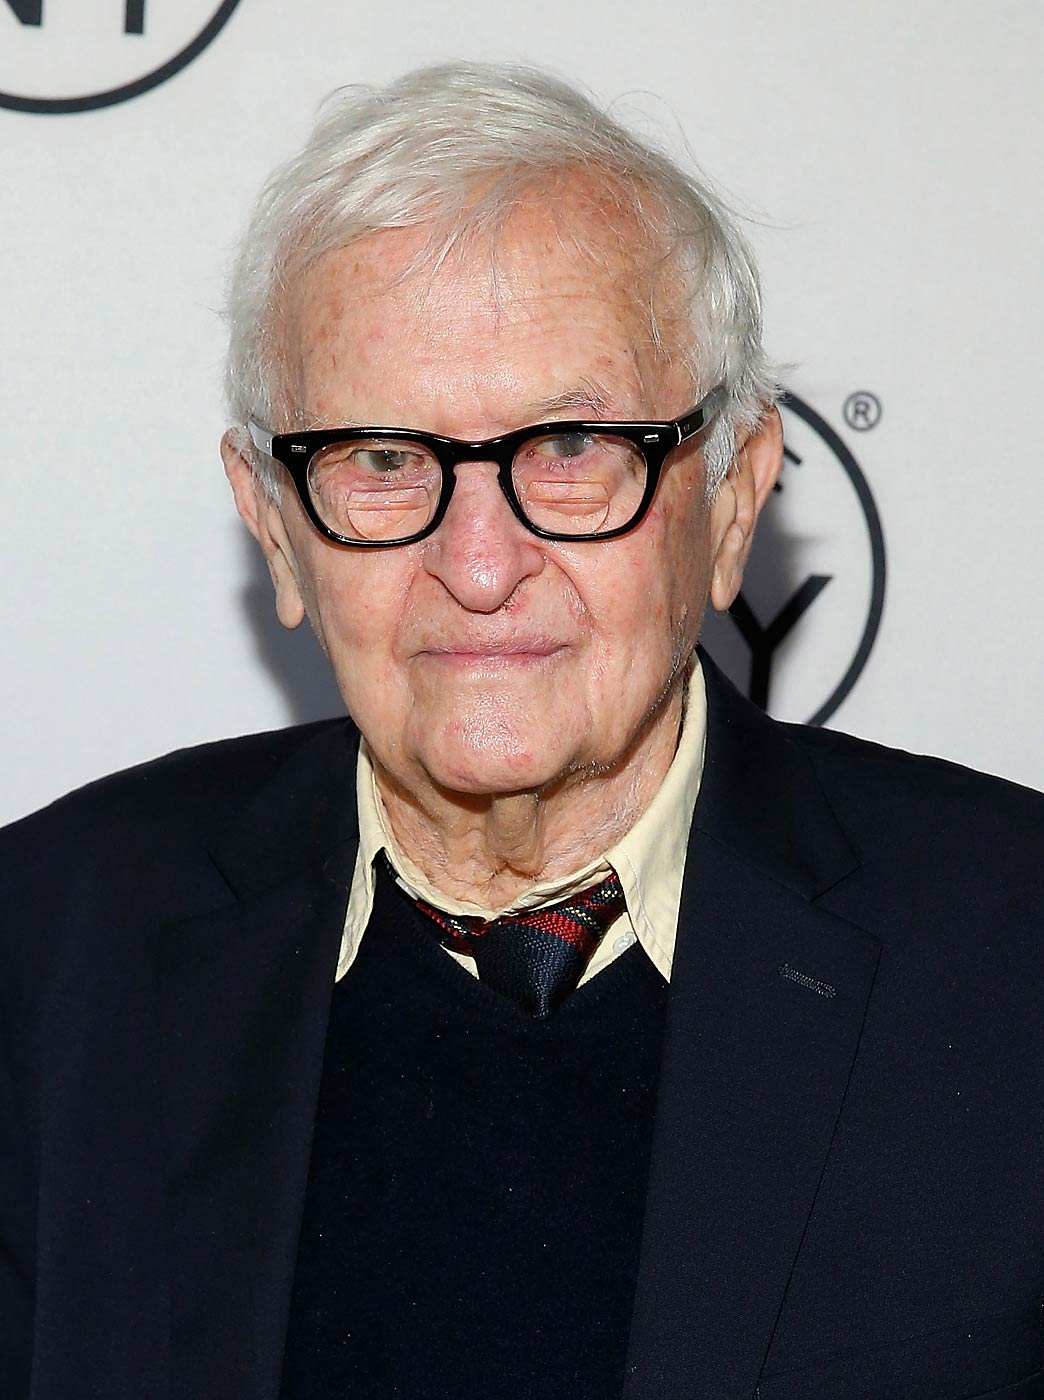 Albert Maysles attends the  Made In NY  Awards Ceremony at Weylin B. Seymour's on Nov. 10, 2014 in Brooklyn, New York.